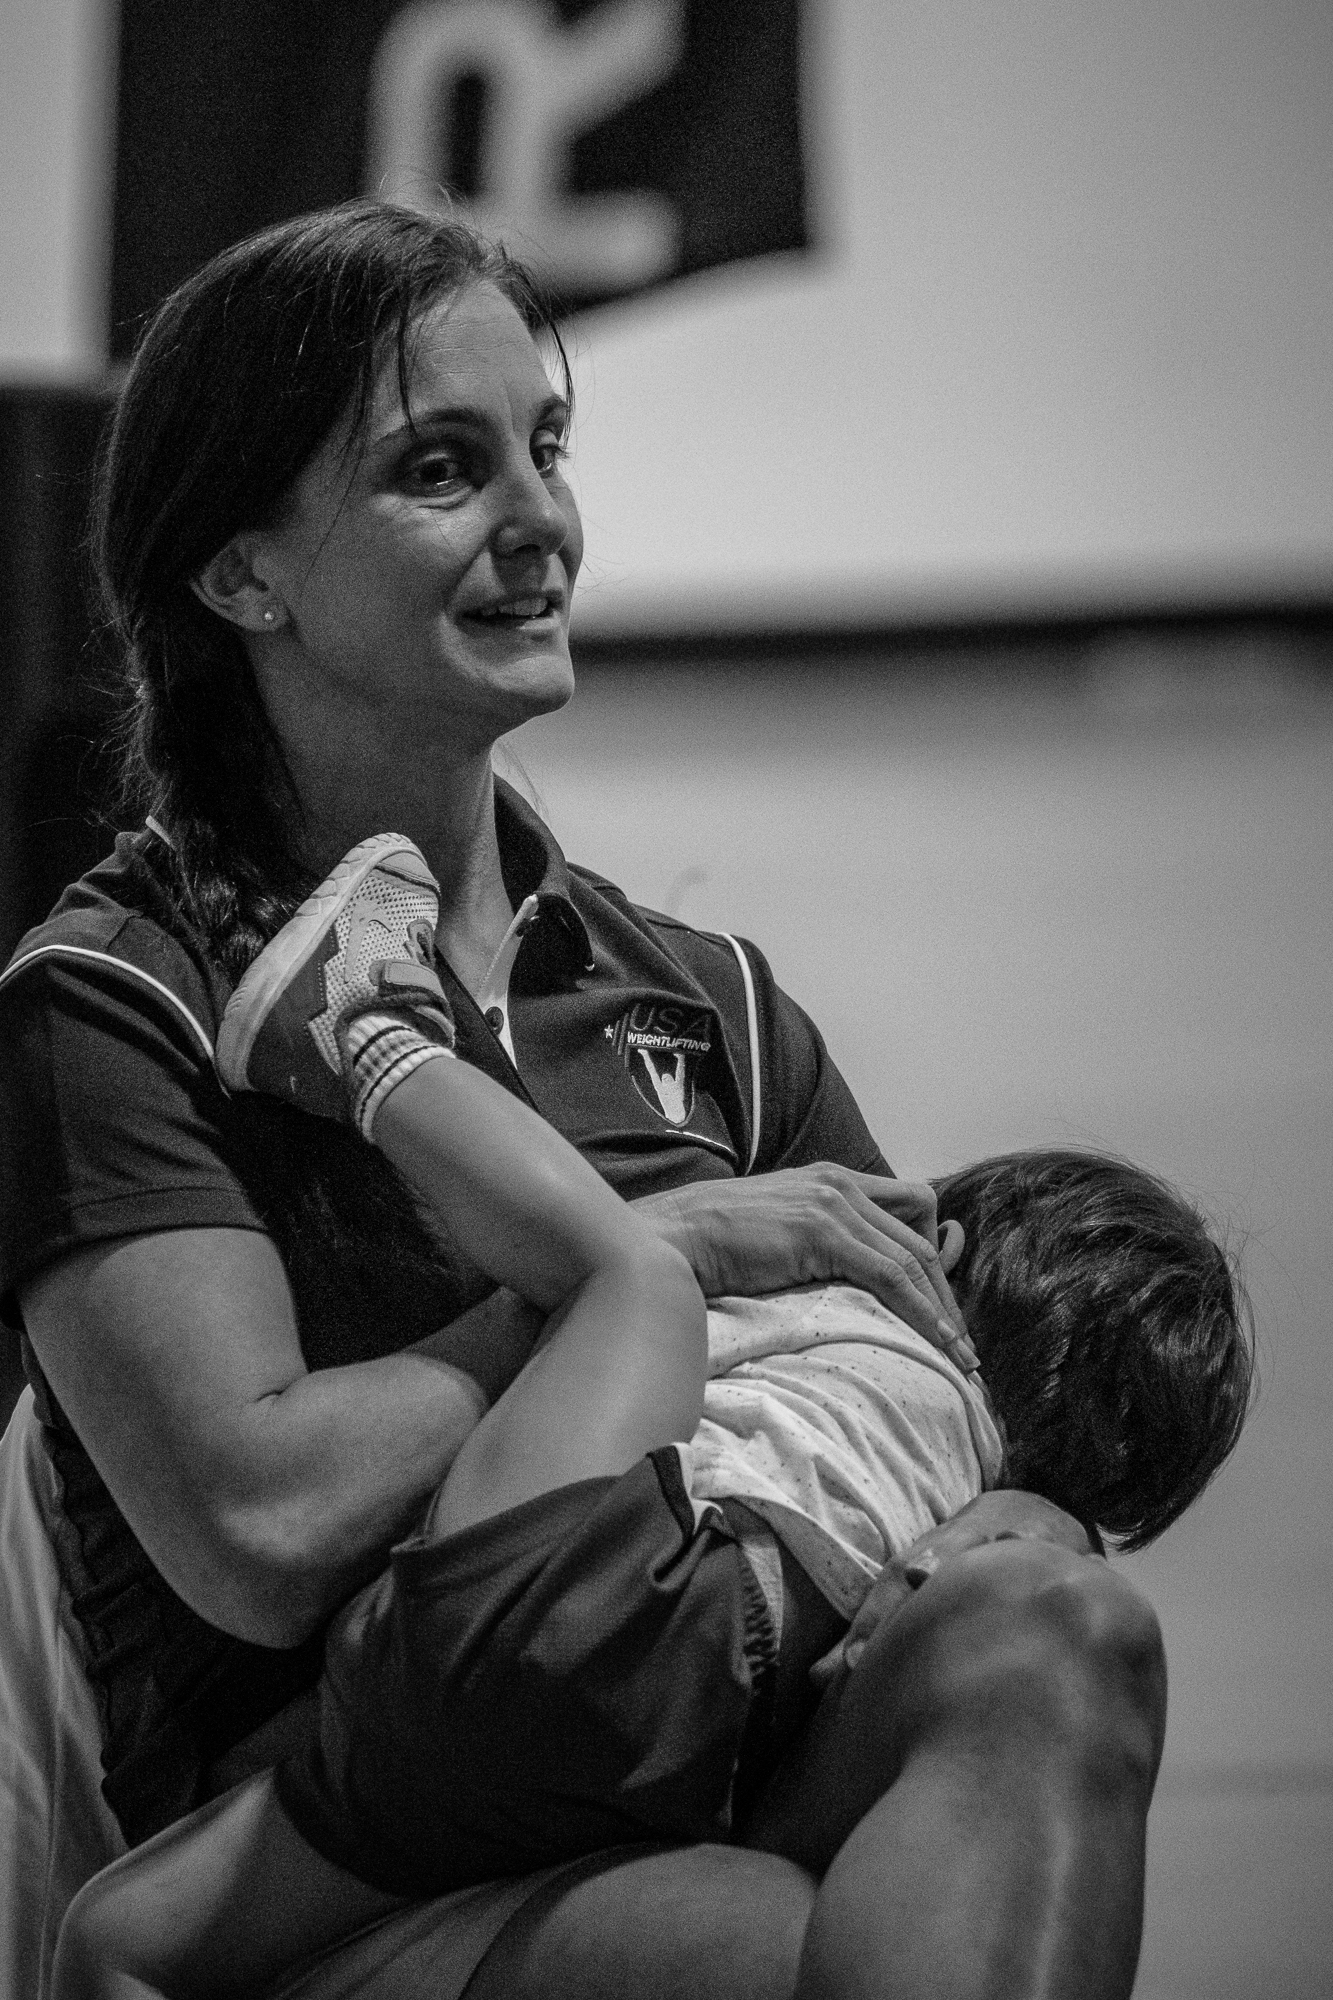 coach-baby-sleeping-weightlifting-youth-weightlifters-weightlifting-moms